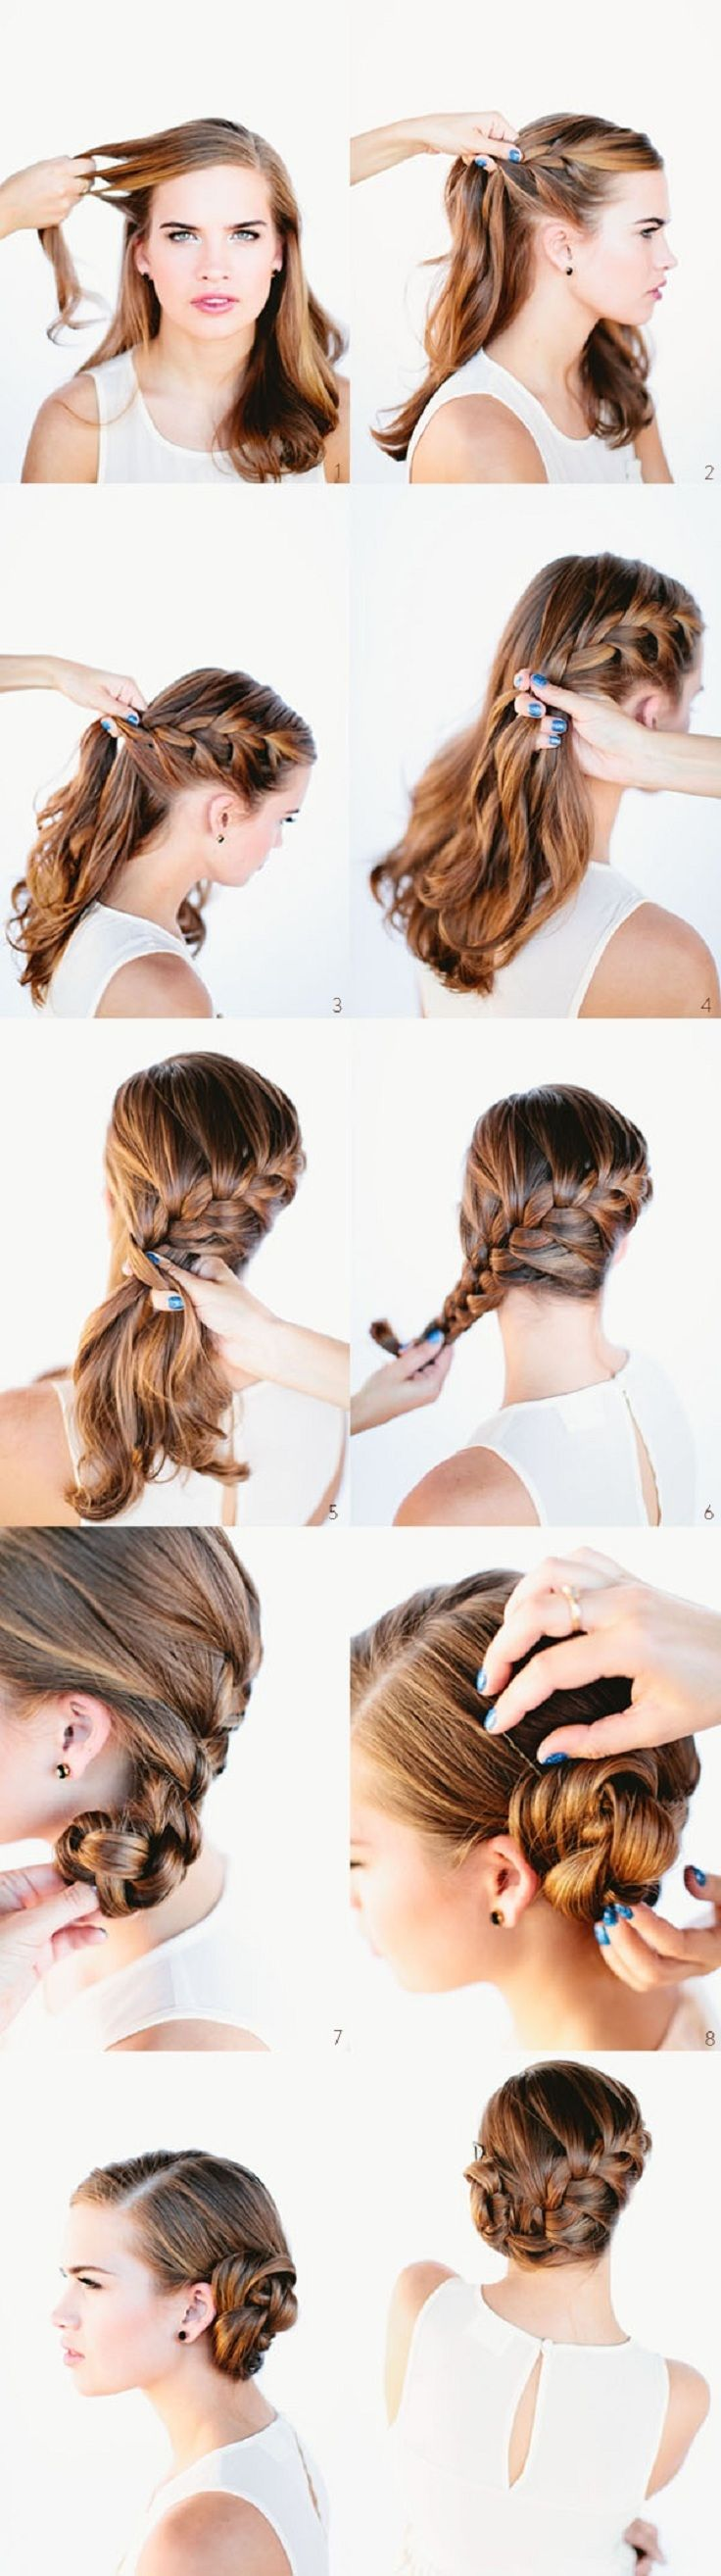 Top 10 Hair Braid tutorials -- These actually seem doable -- especially since I cannot French braid